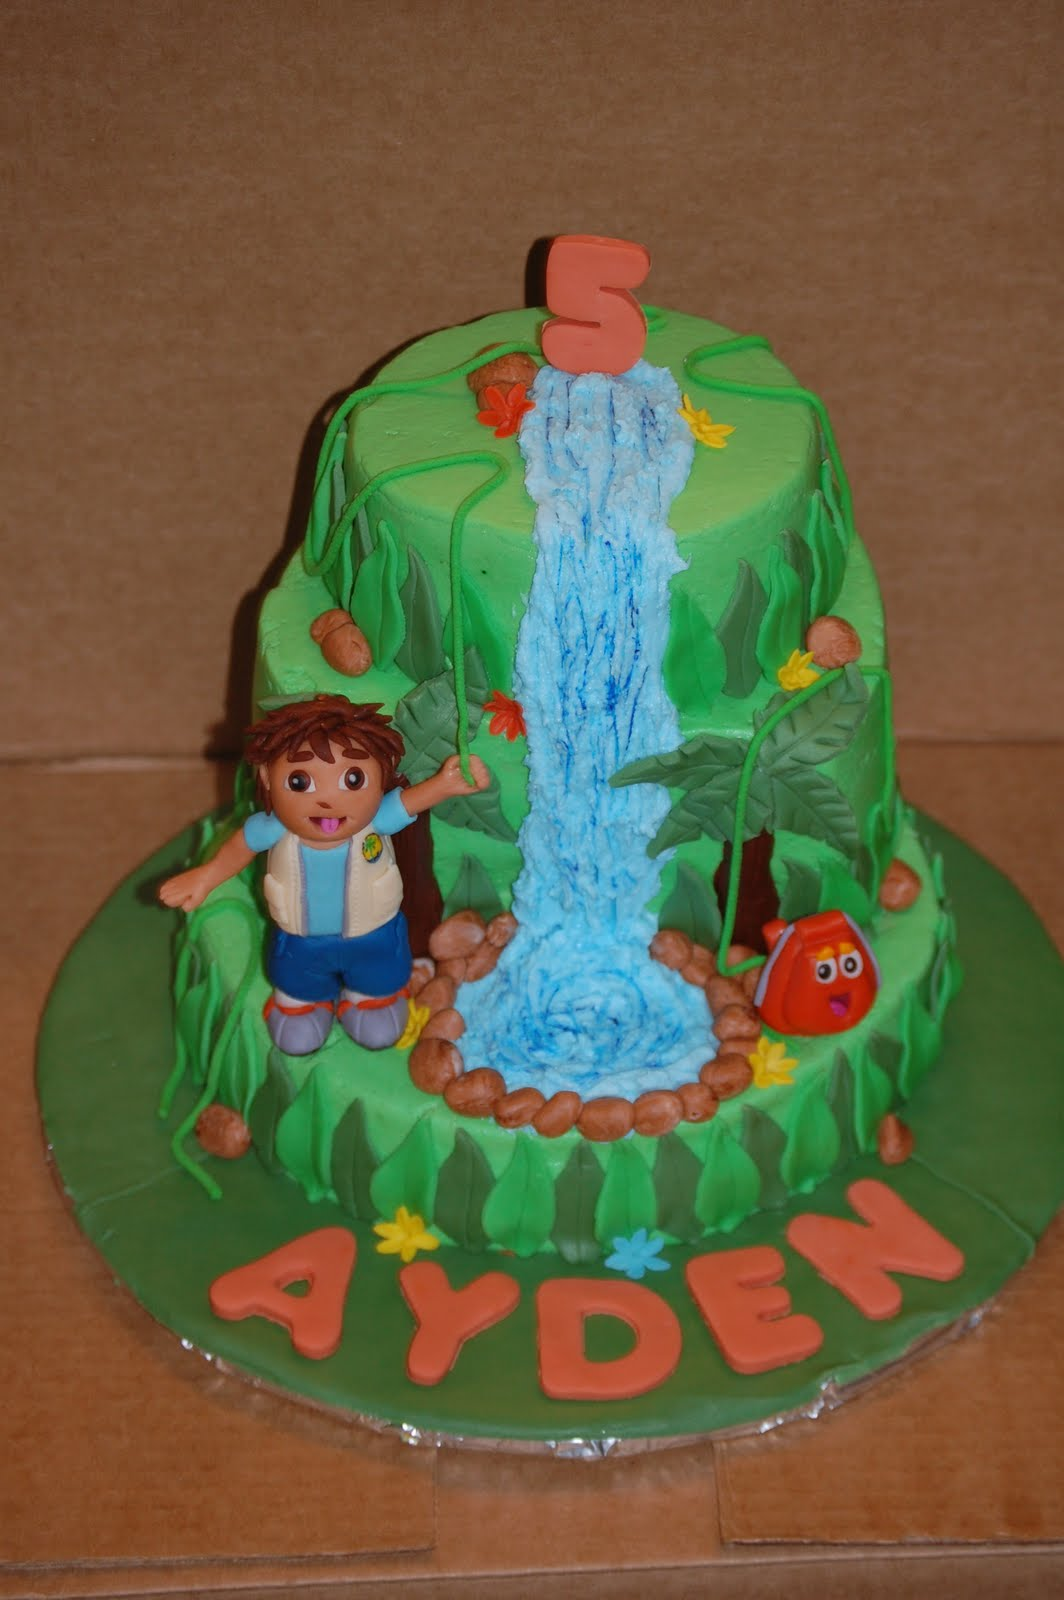 Diego Cakes Decoration Ideas Little Birthday Cakes